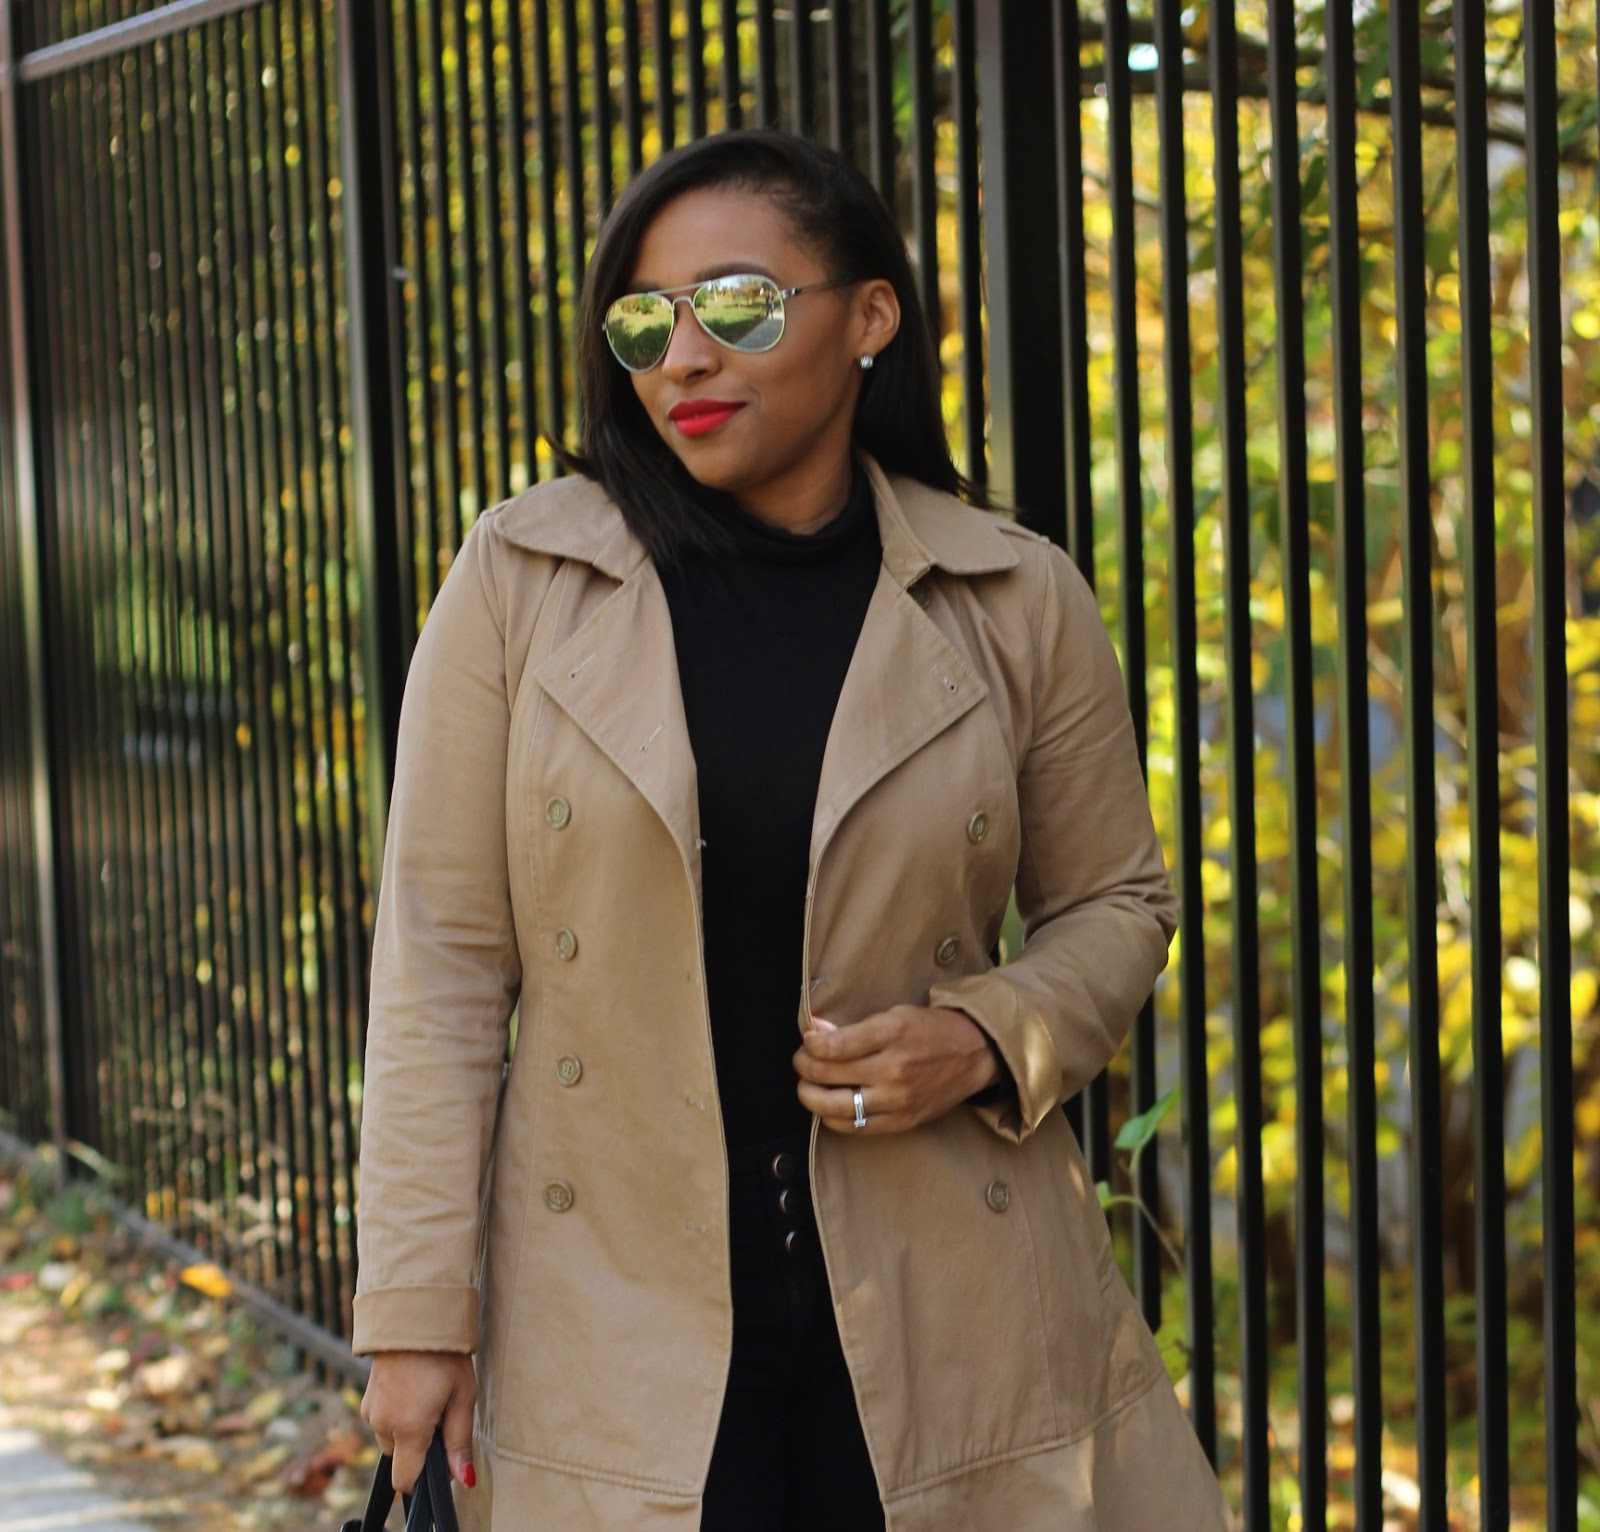 trench coat, camel coat, fall jackets, fall chic, fall outfits